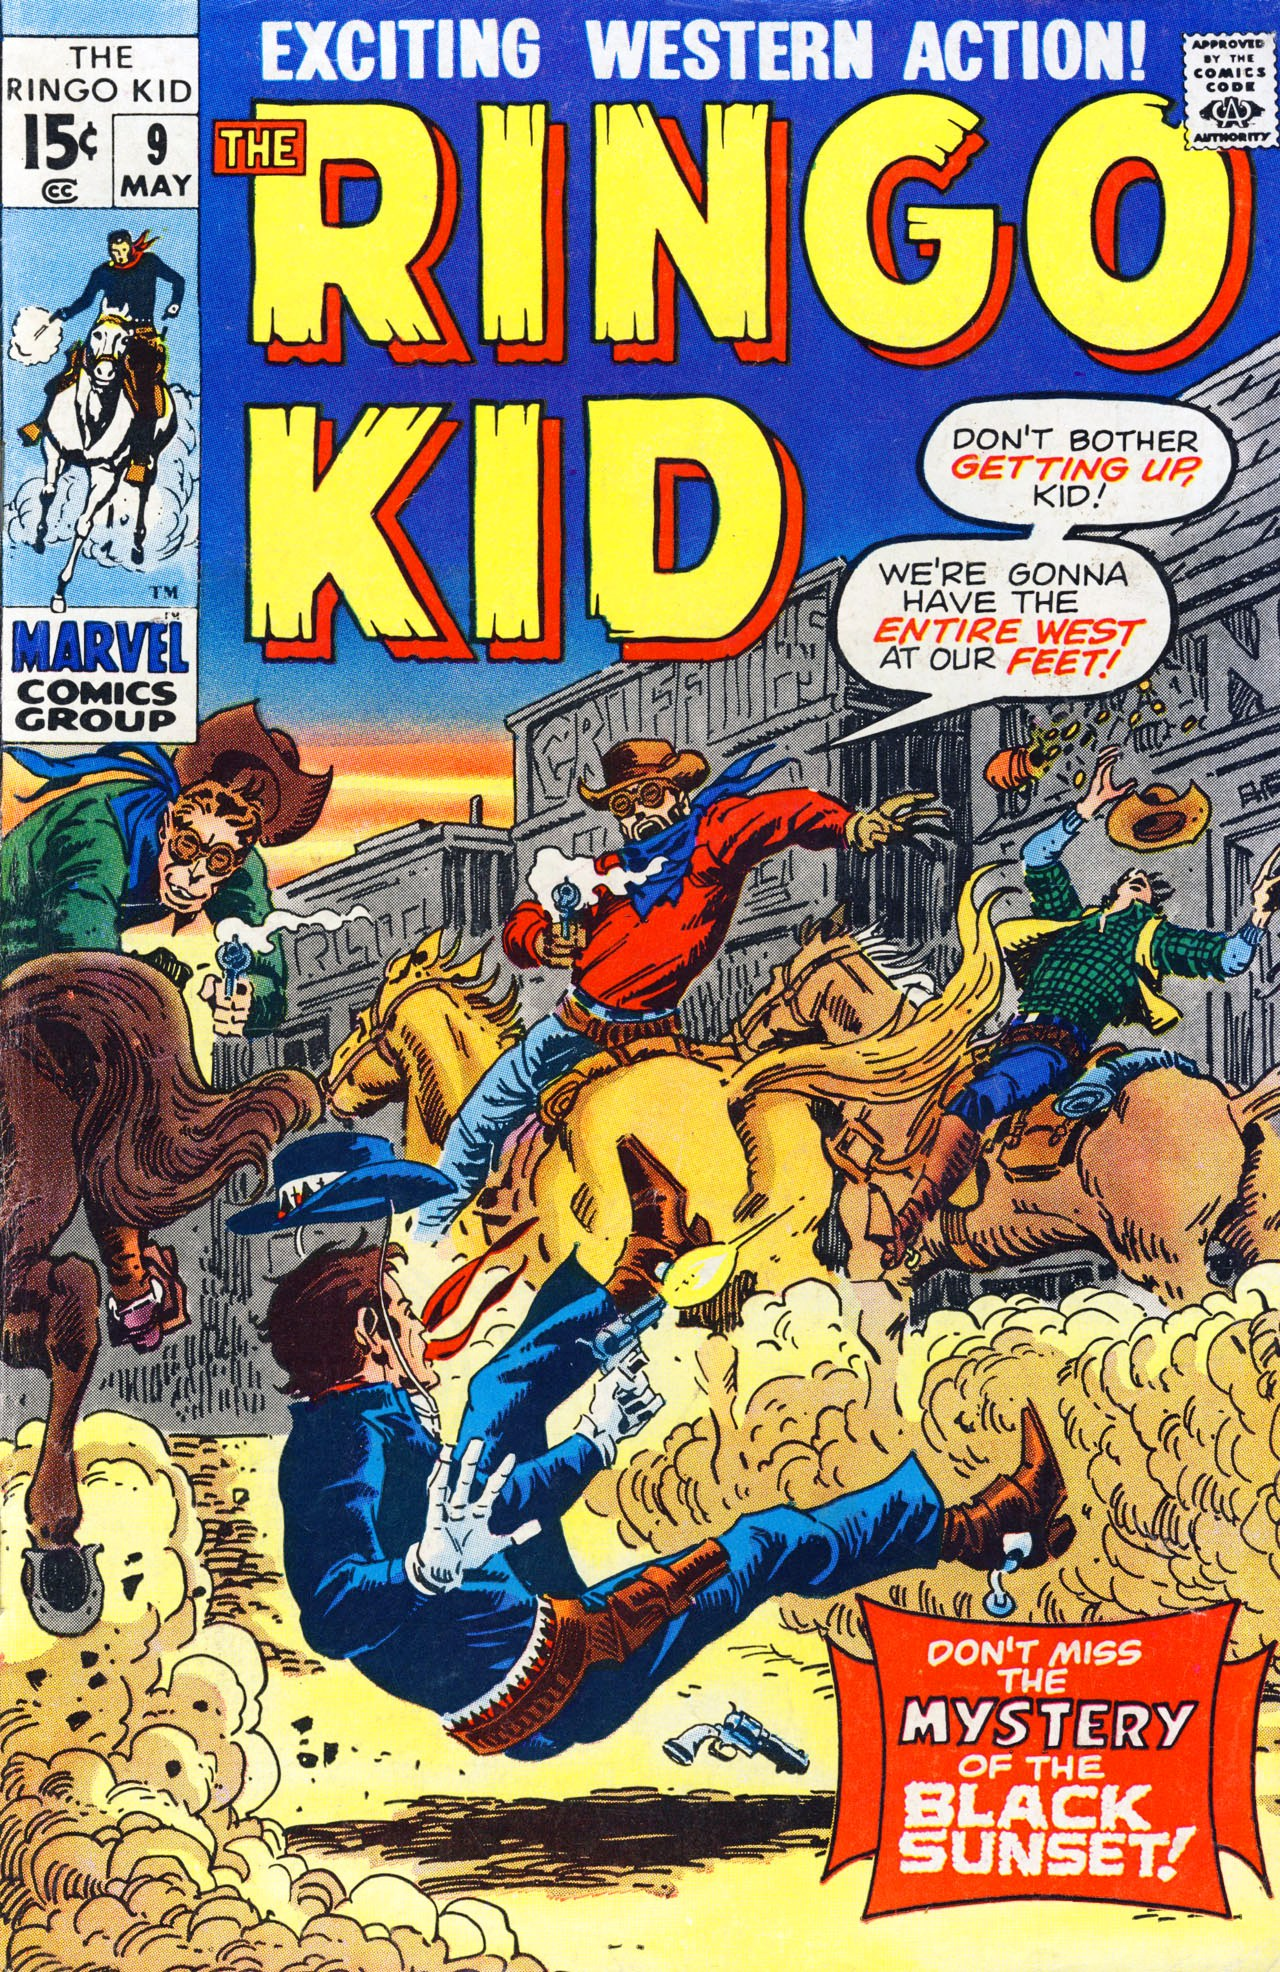 The Ringo Kid V2 9 Story Image